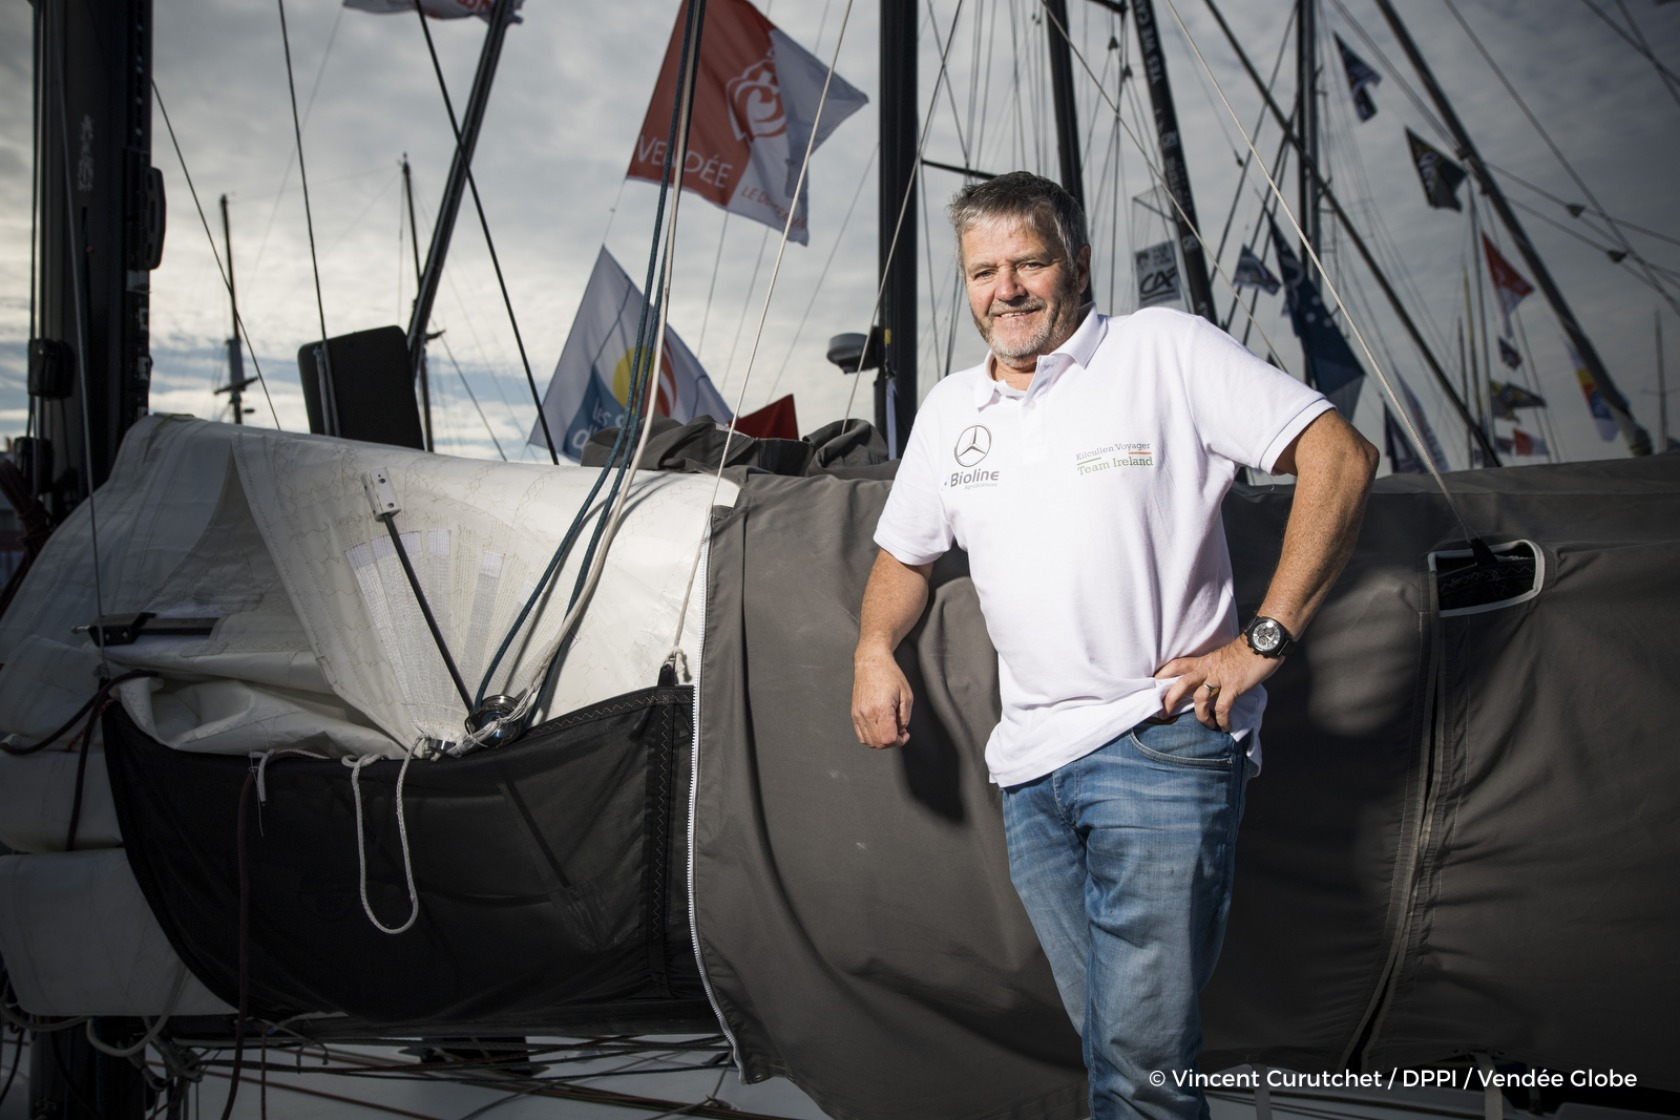 Enda O'Coineen (IRL), skipper Kilcullen Voyager - Team Ireland, portraited on pontoons of the Vendee Globe, in Les Sables d'Olonne, France, on November 4th, 2016 - Photo Vincent Curutchet / DPPI / Vendee GlobePortrait de Enda O'Coineen (IRL), skipper Ki